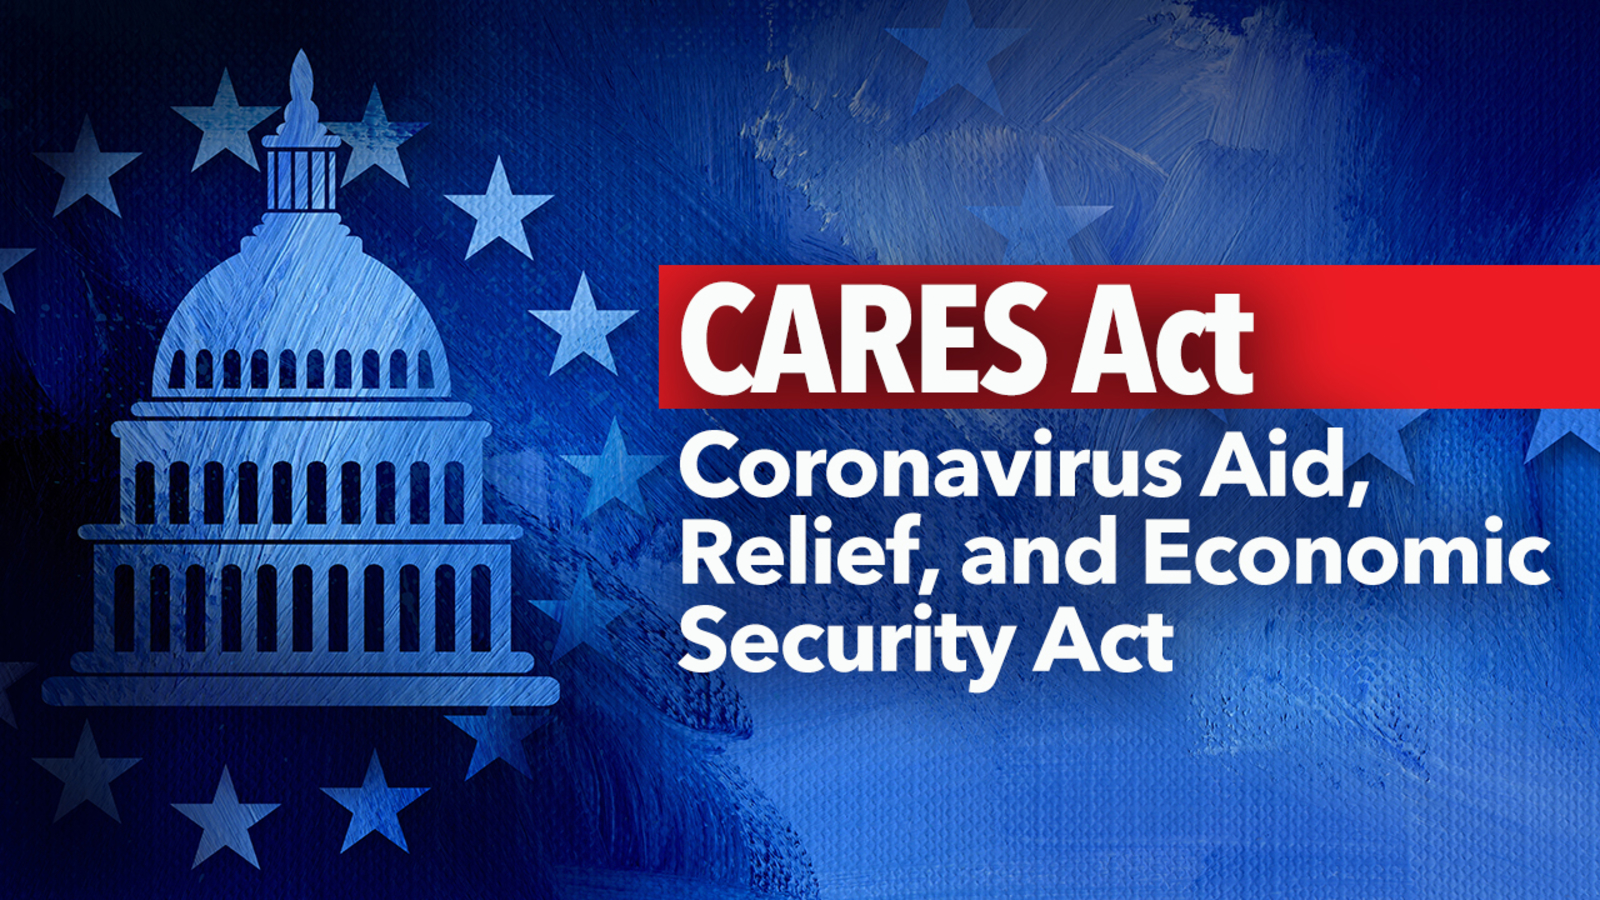 CARES Act Provider Relief Fund: For Providers